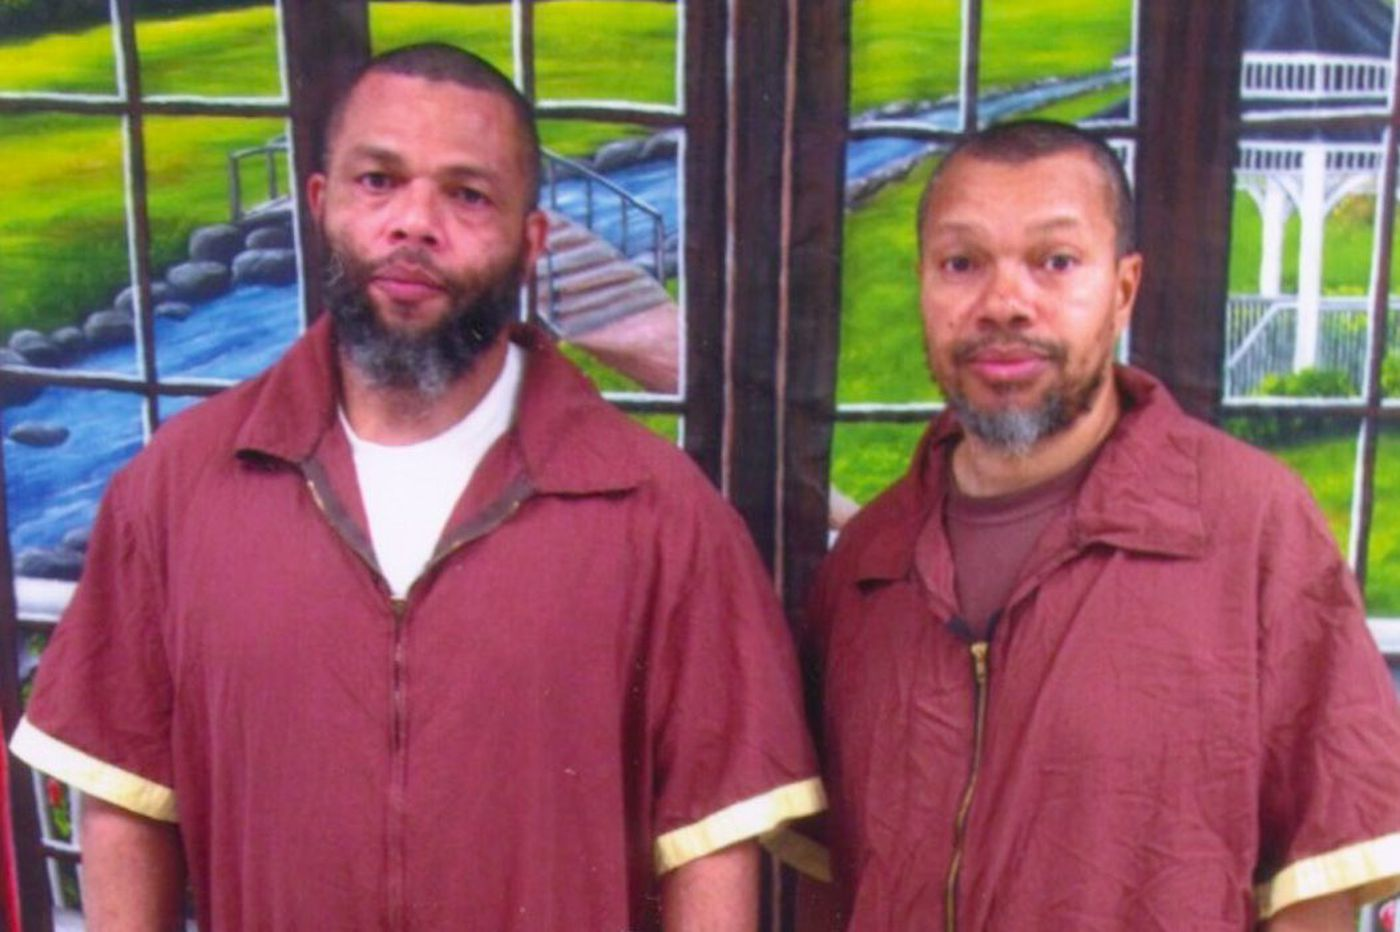 An accomplice will die in prison while the killer goes free: The strange justice of Pennsylvania's felony-murder law